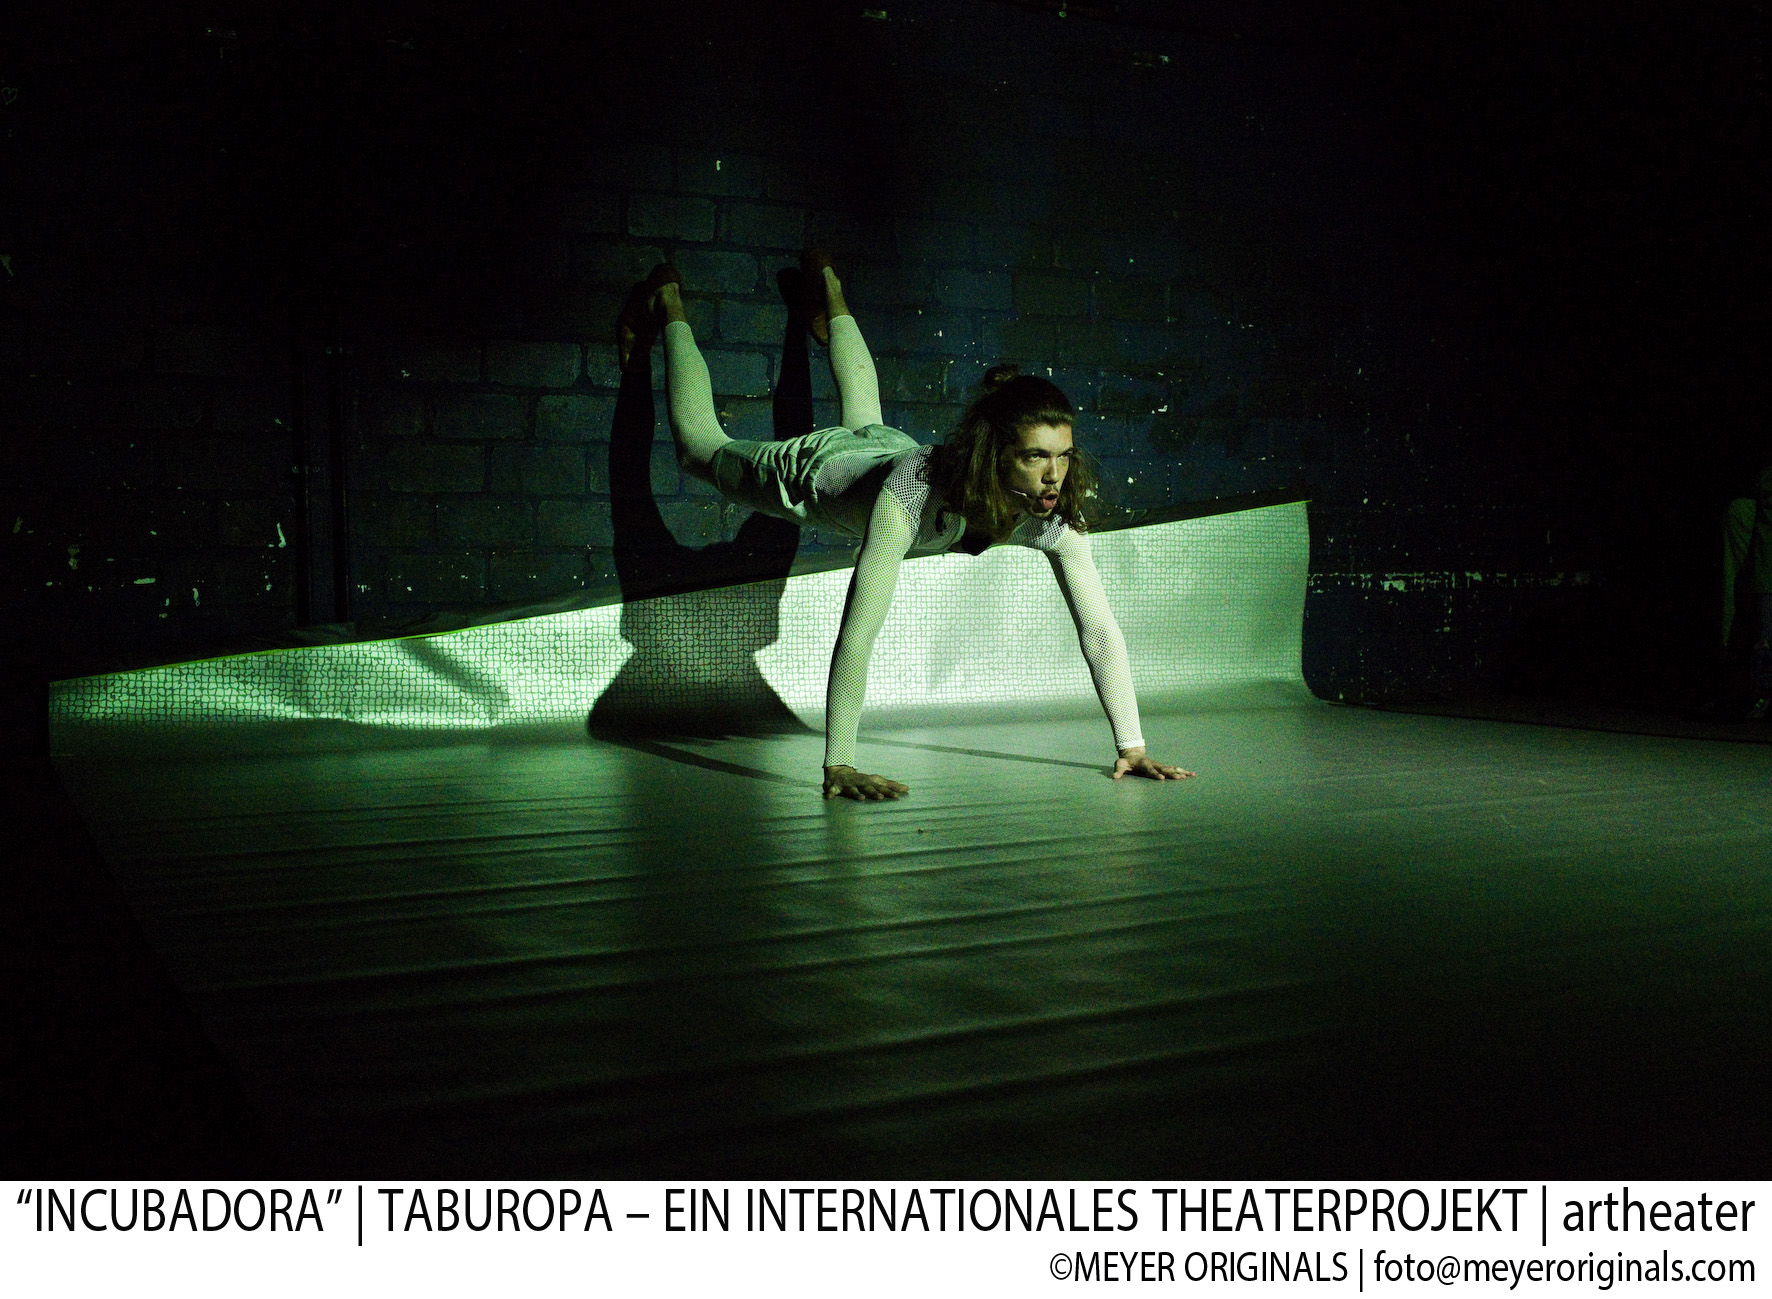 TABUROPA – EIN INTERNATIONALES THEATERPROJEKT